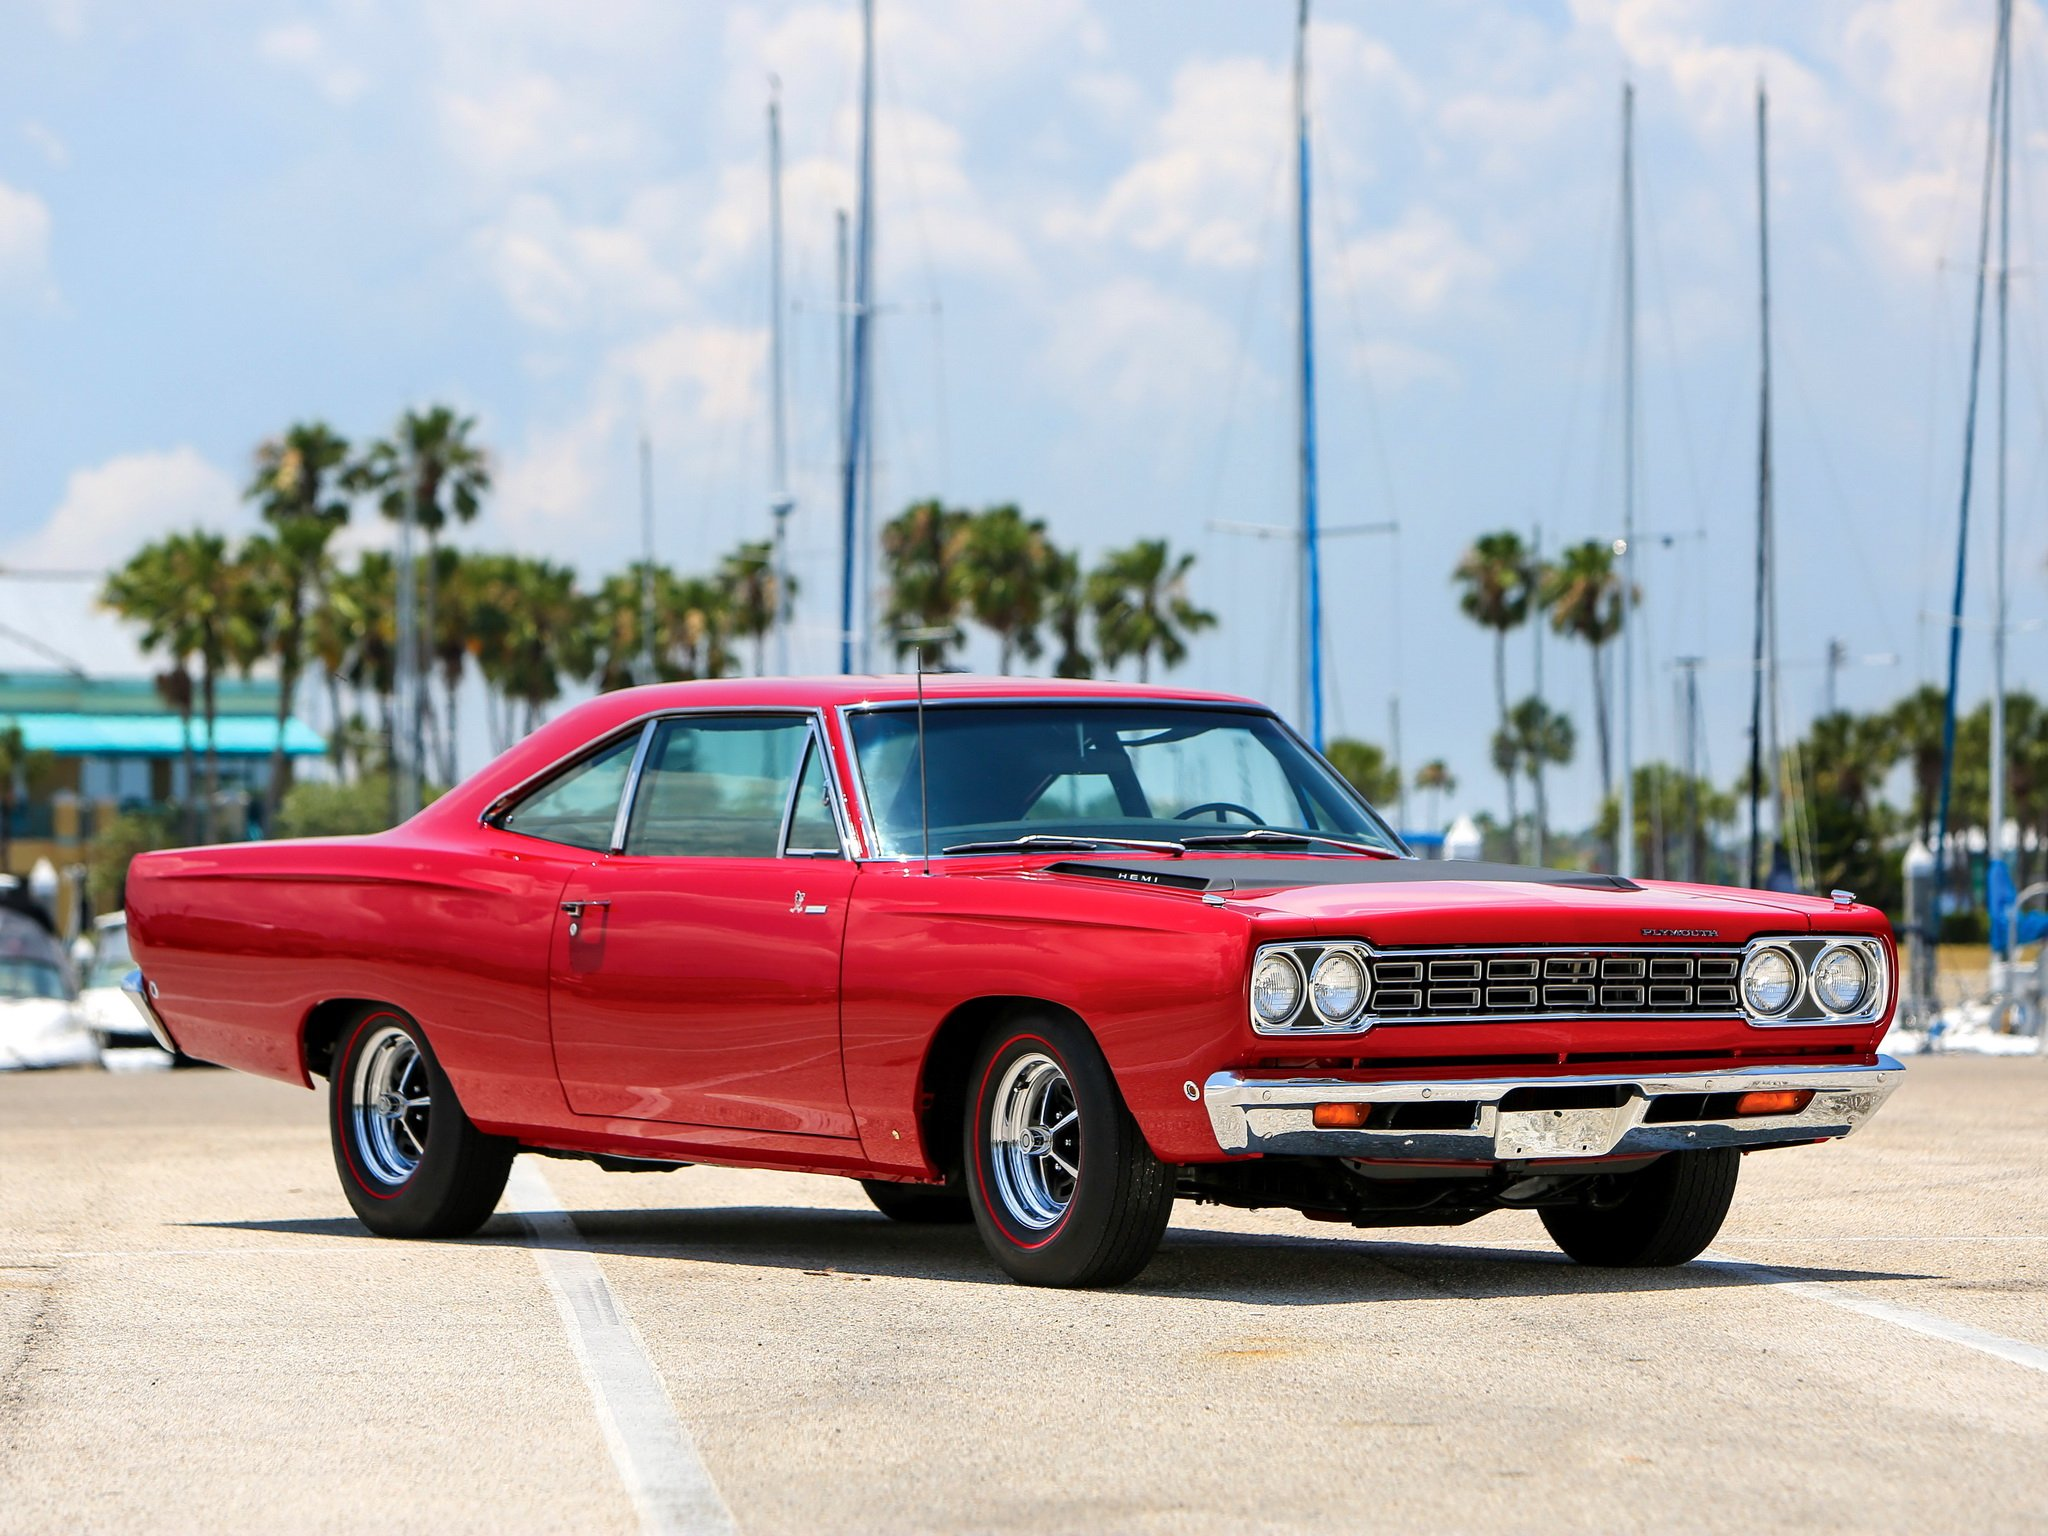 2048x1536 - Plymouth Road Runner Wallpapers 13